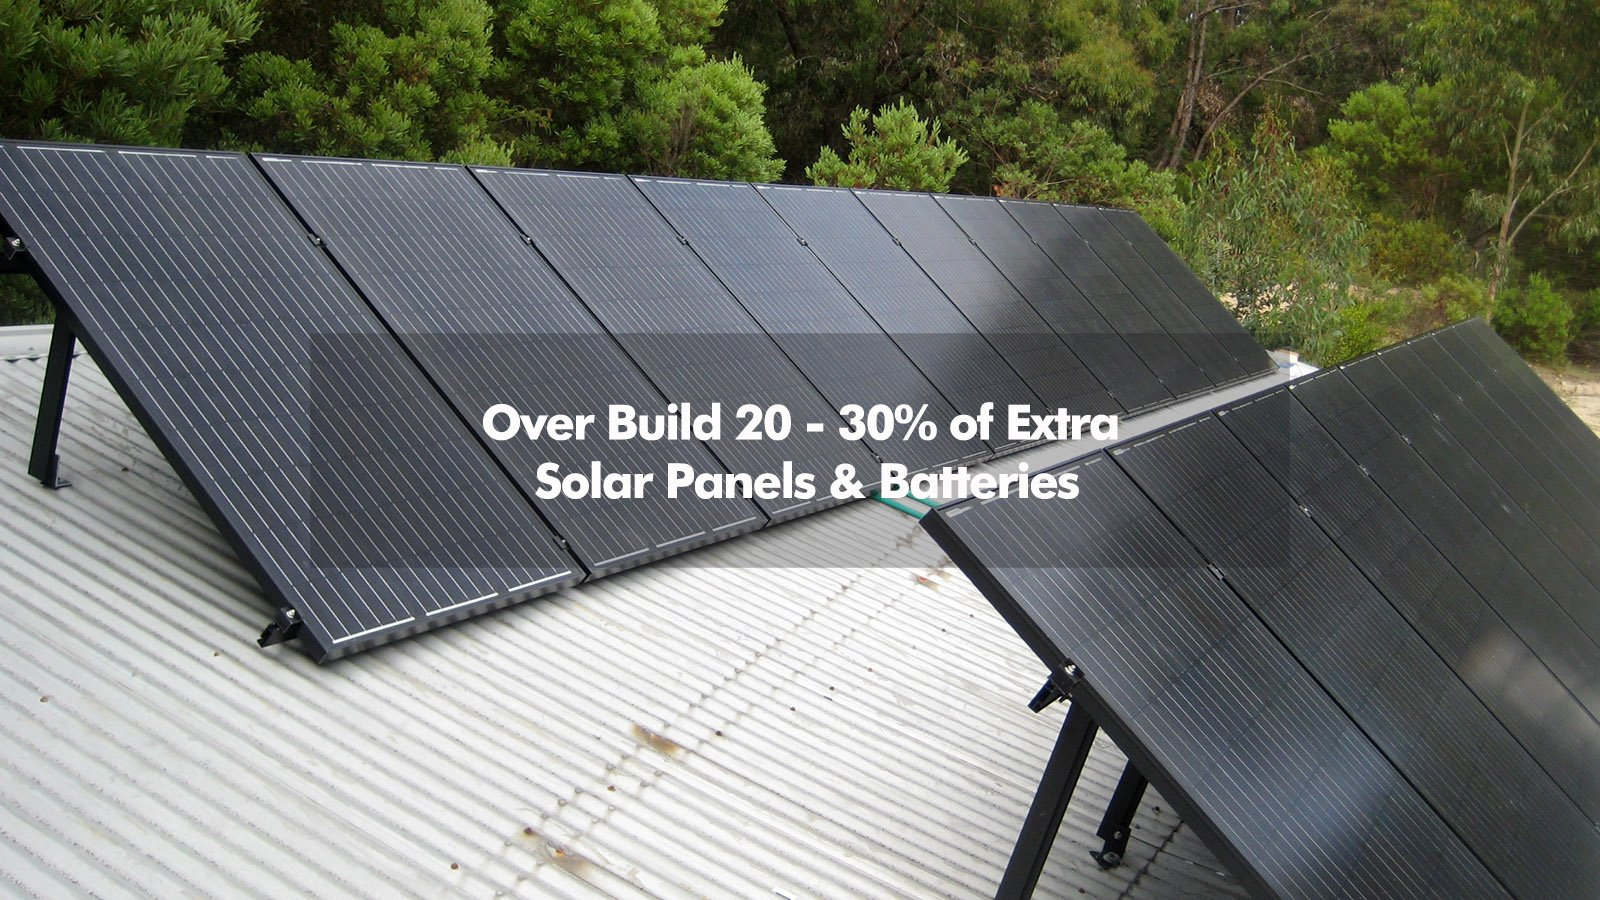 over build off-grid solar systems